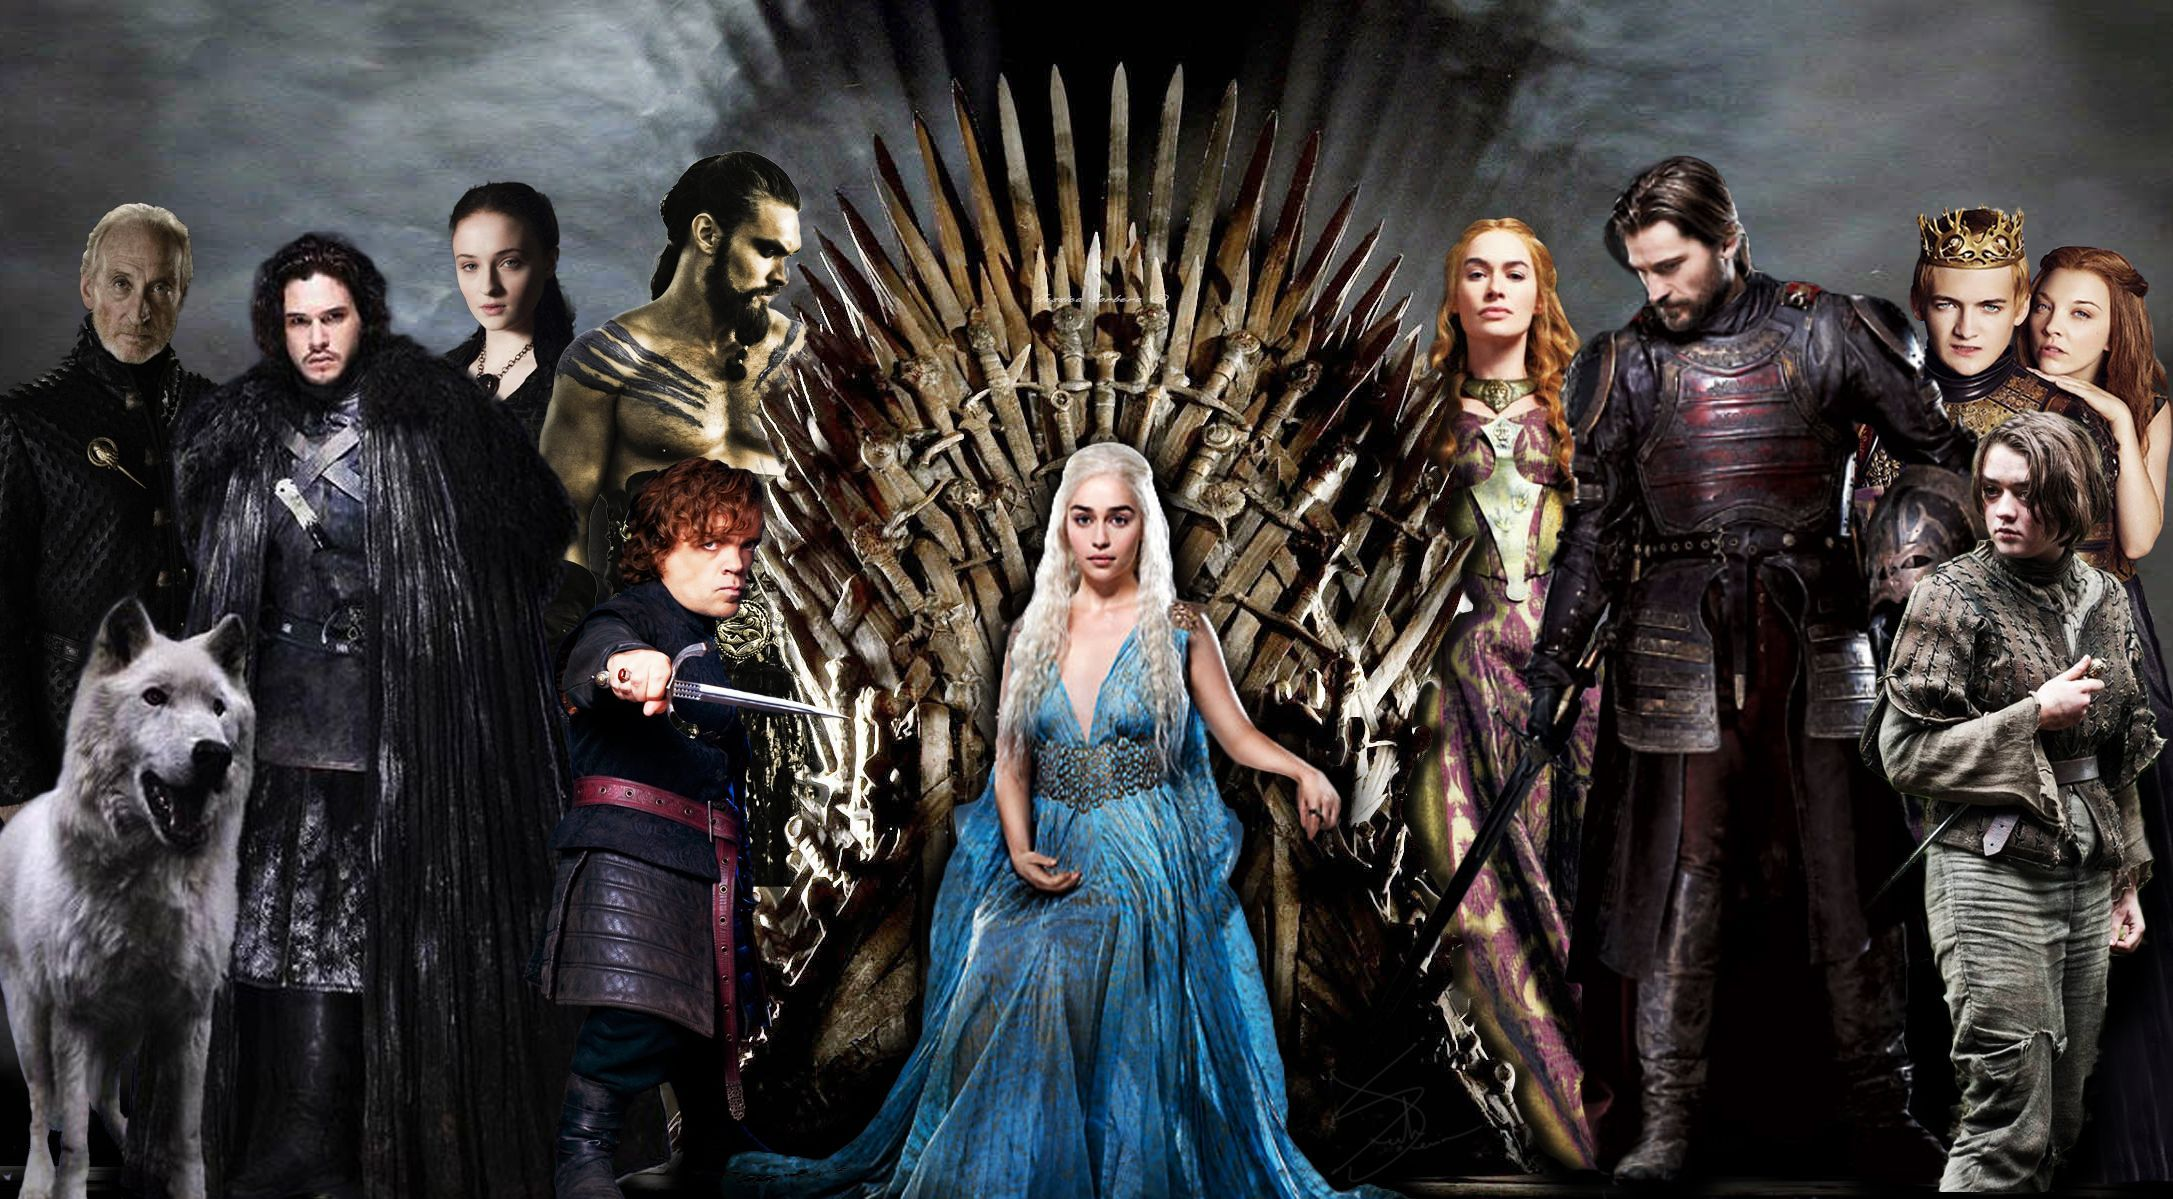 Game Of Thrones Wallpaper By 21jessica93 On Deviantart Game Of Thrones Figures Game Of Thrones S7 Seasons